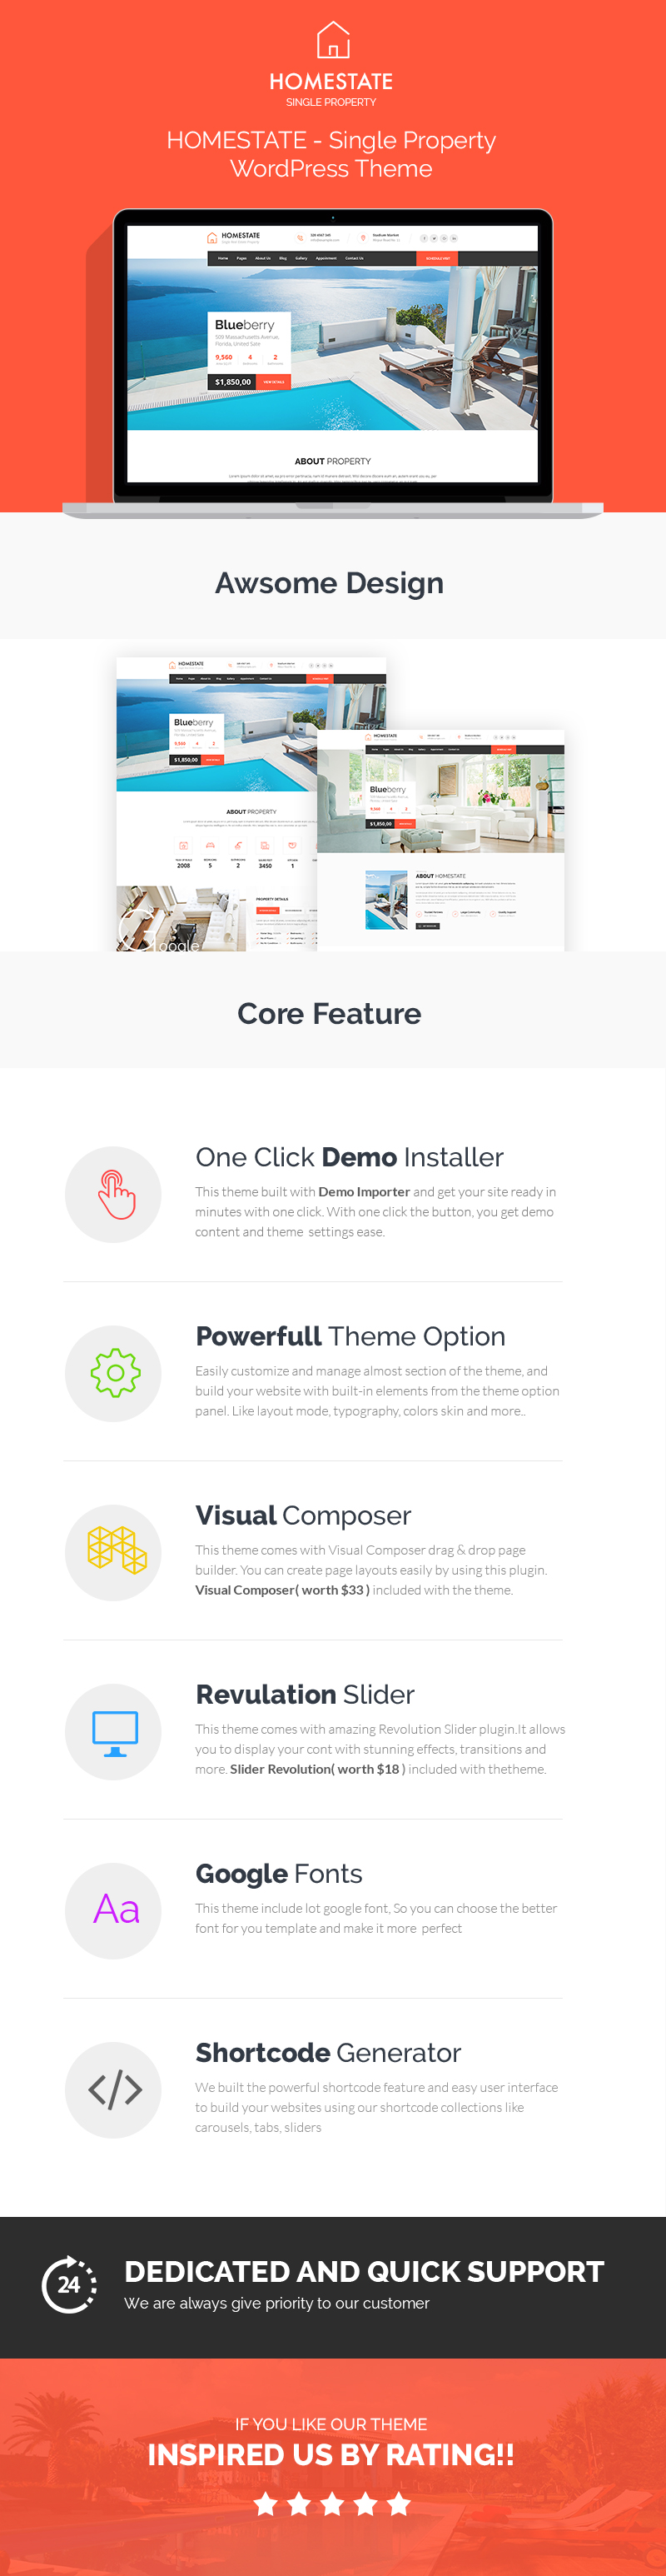 home2 - HOME STATE - Single Property Real Estate WordPress Theme